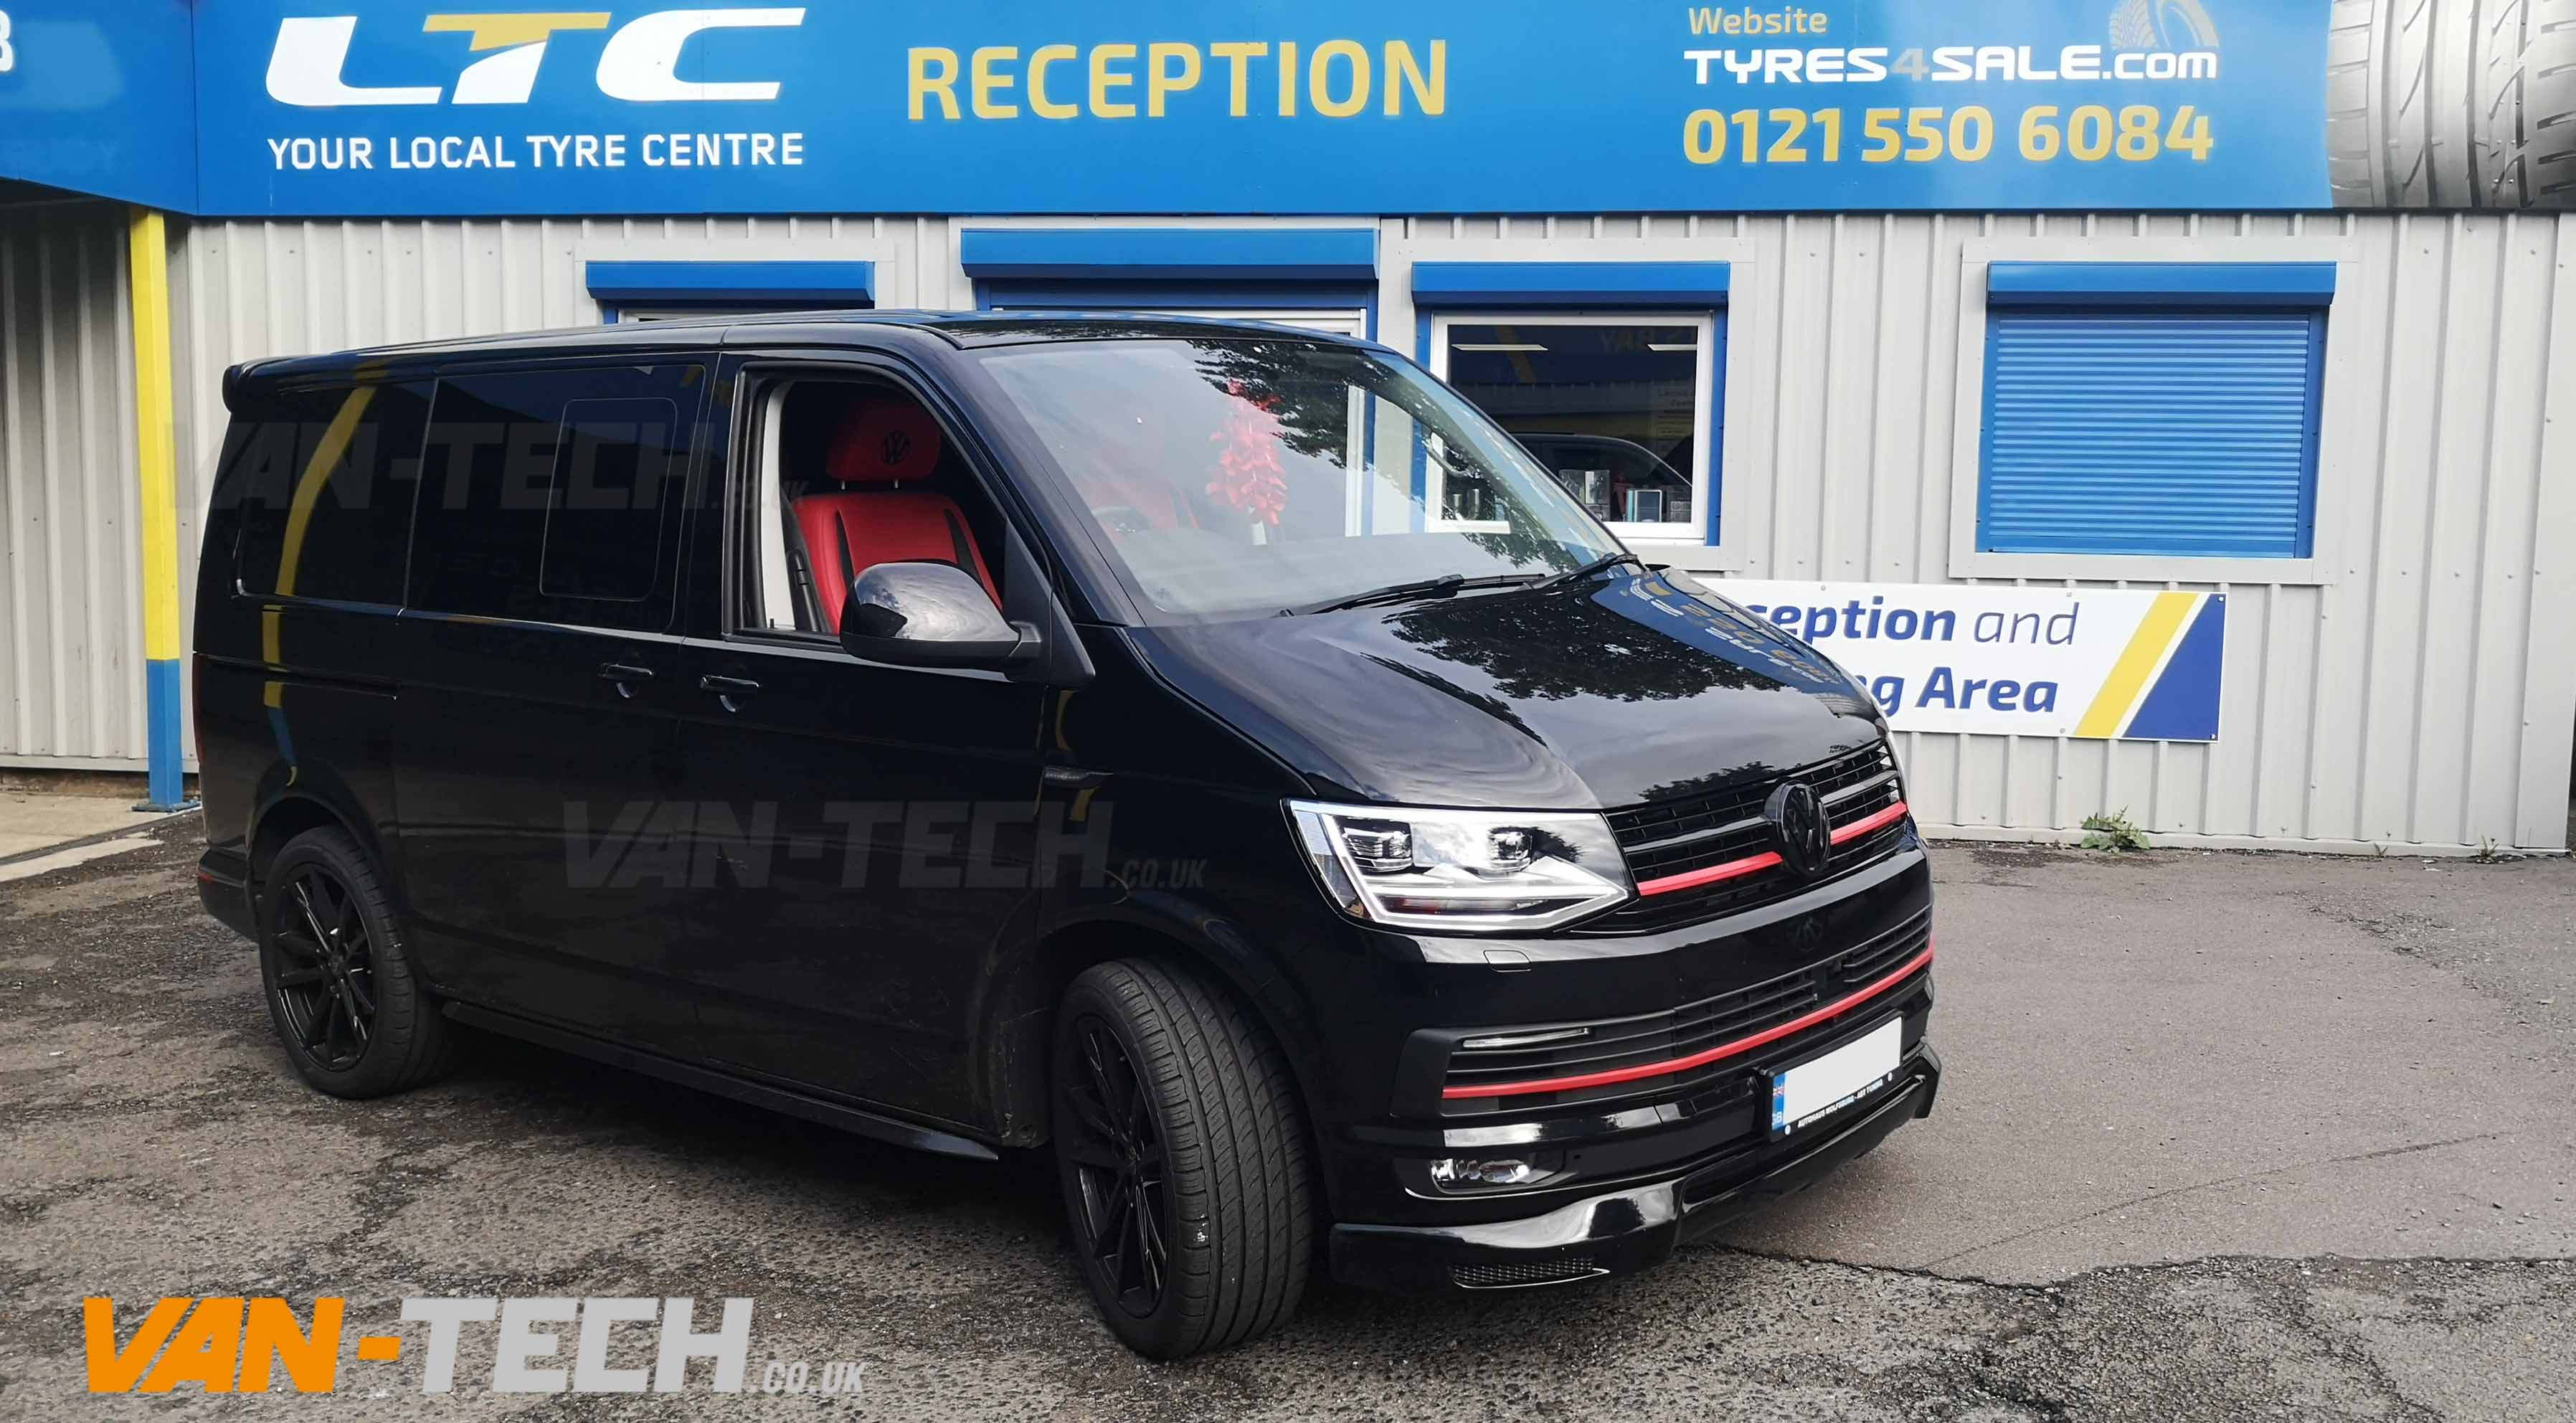 VW T6 Parts supplied and fitted by Van-Tech